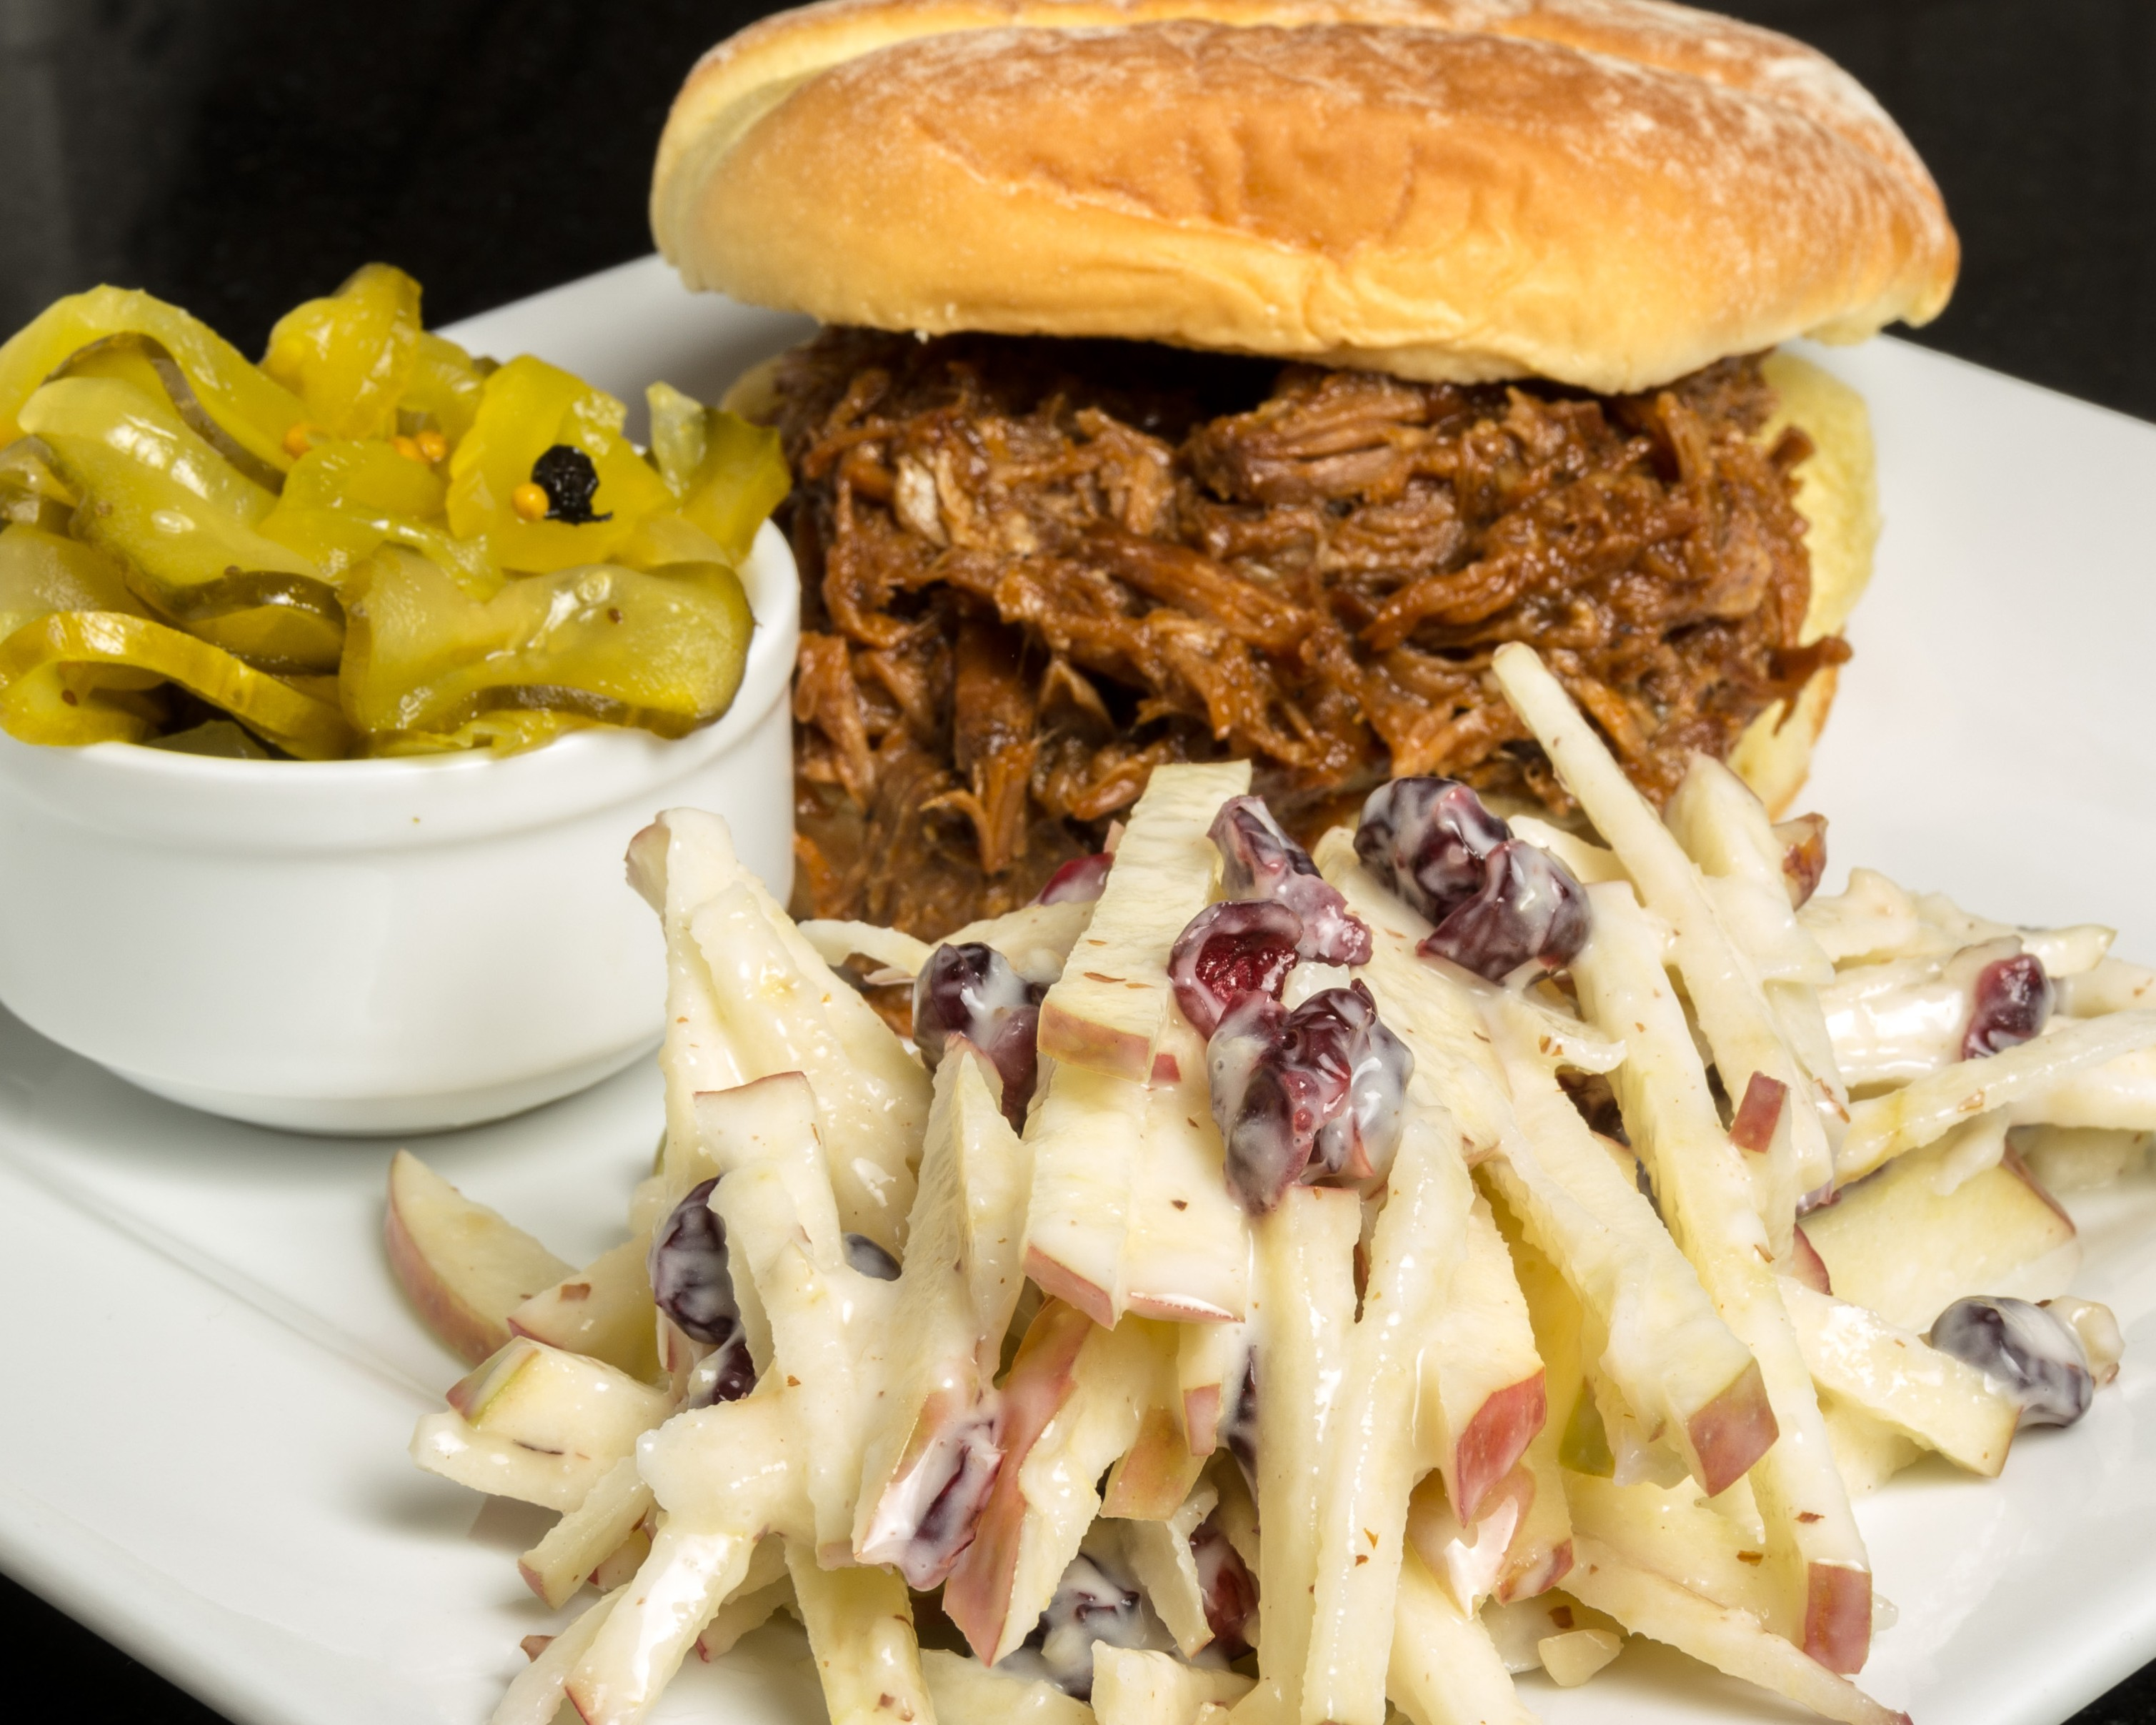 Pork Sandwich & Apple slaw